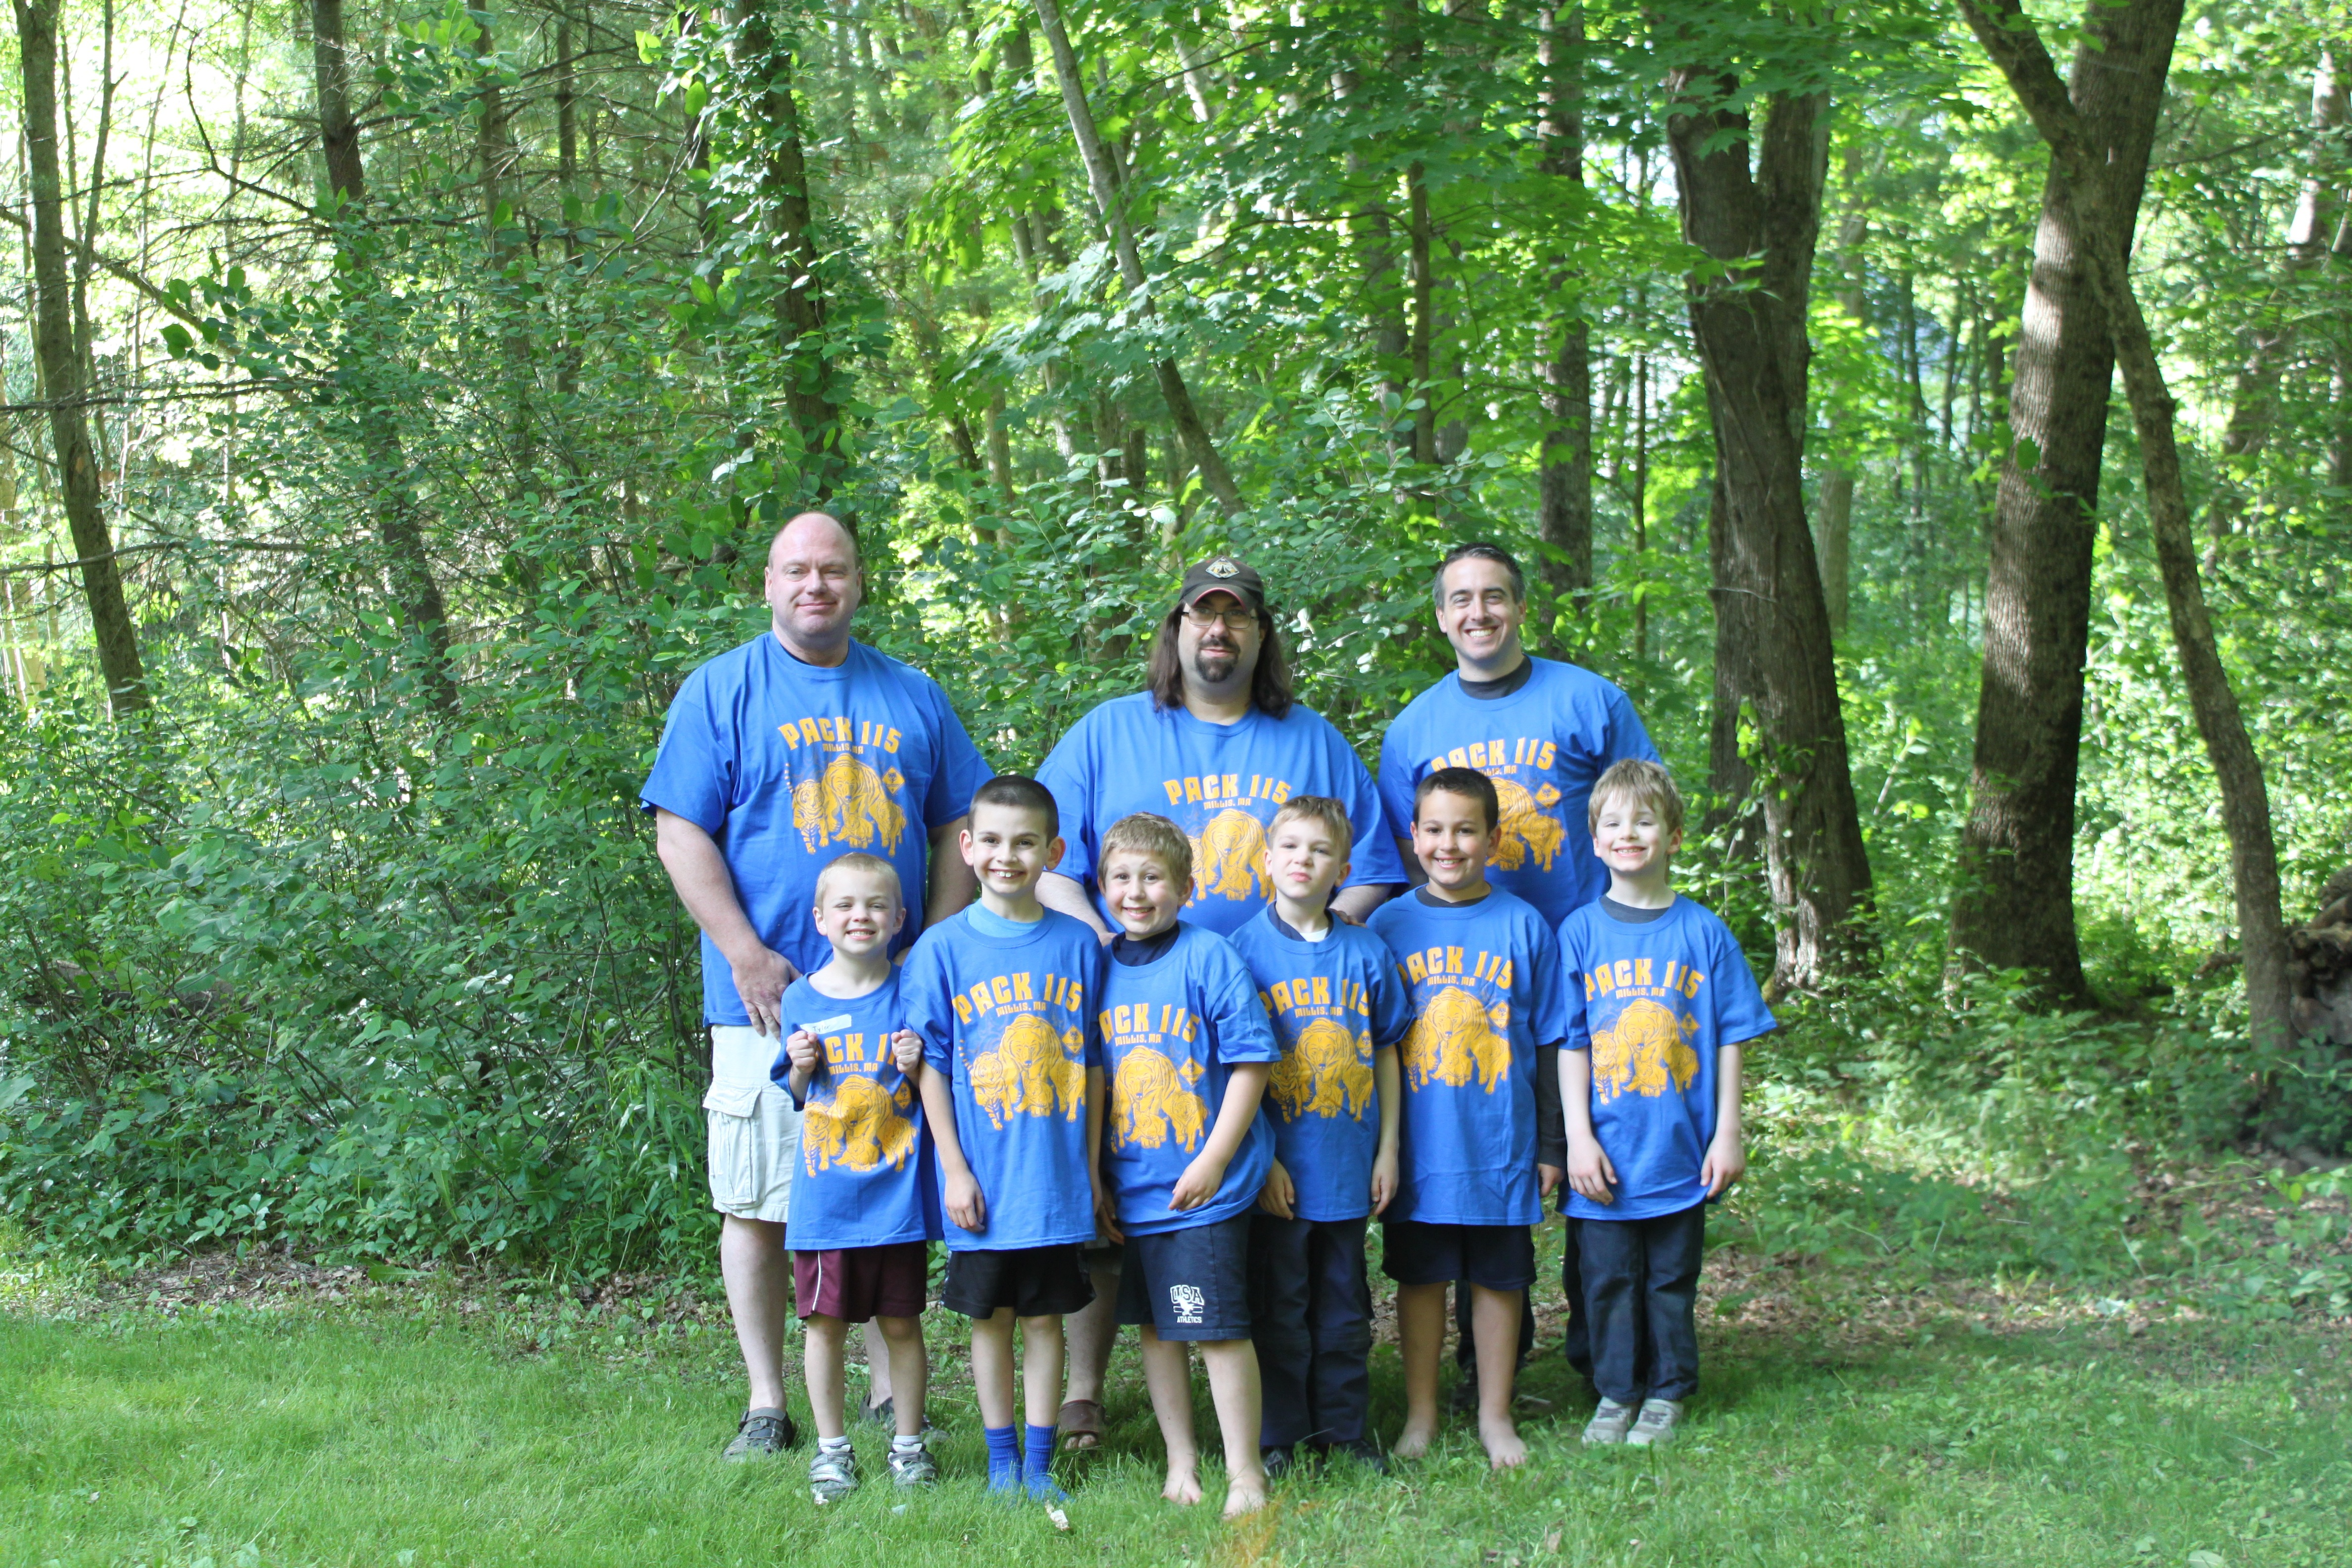 Cub Scout Pack 115 Is Pictured At Their End Of Year Barbecue Wearing Their Brand New ClassB T-shirts